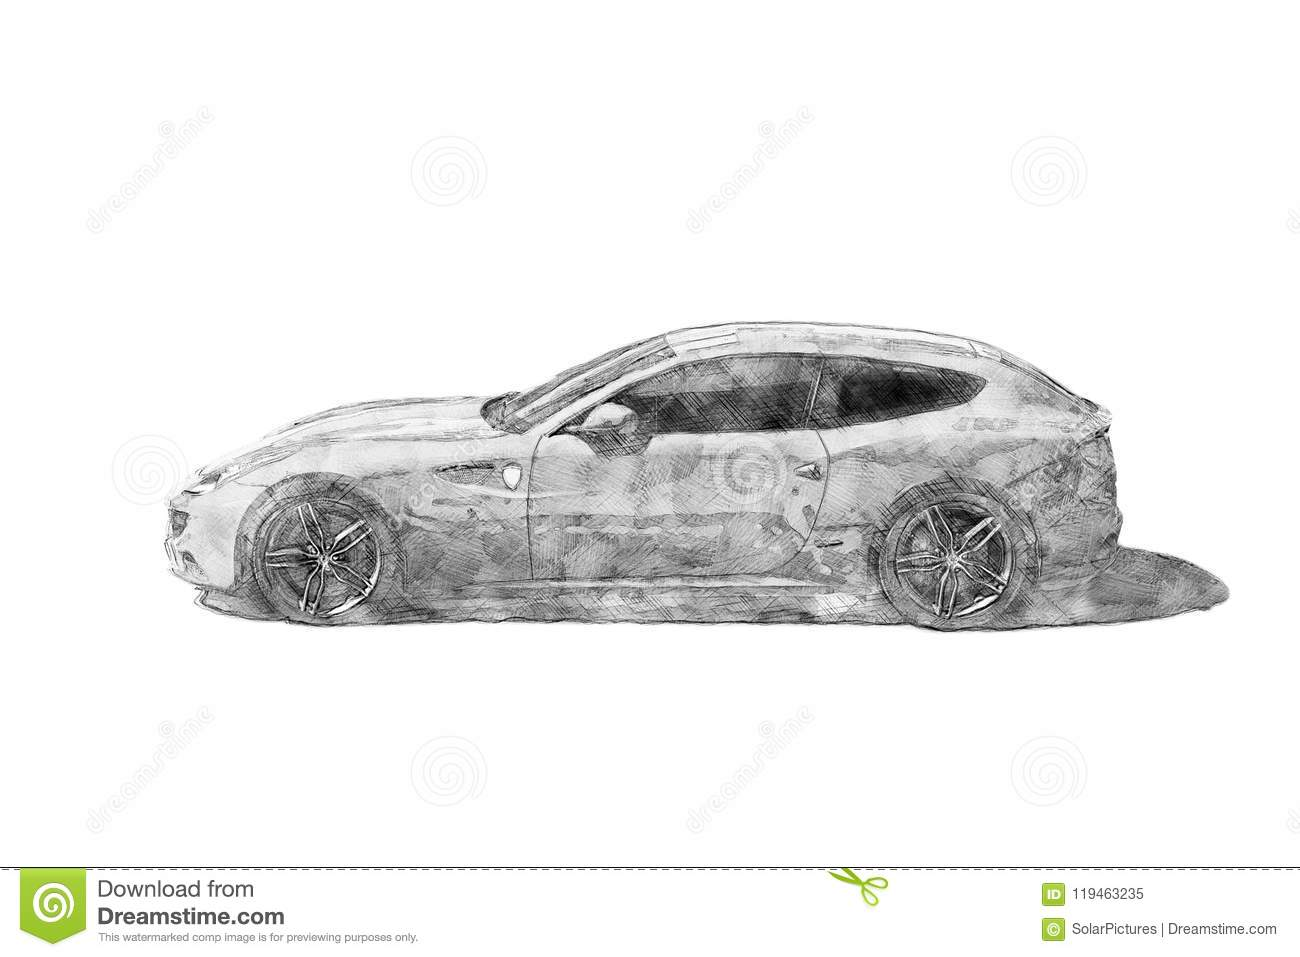 A pencil sketch drawing illustration of a modern sports car isolated side view